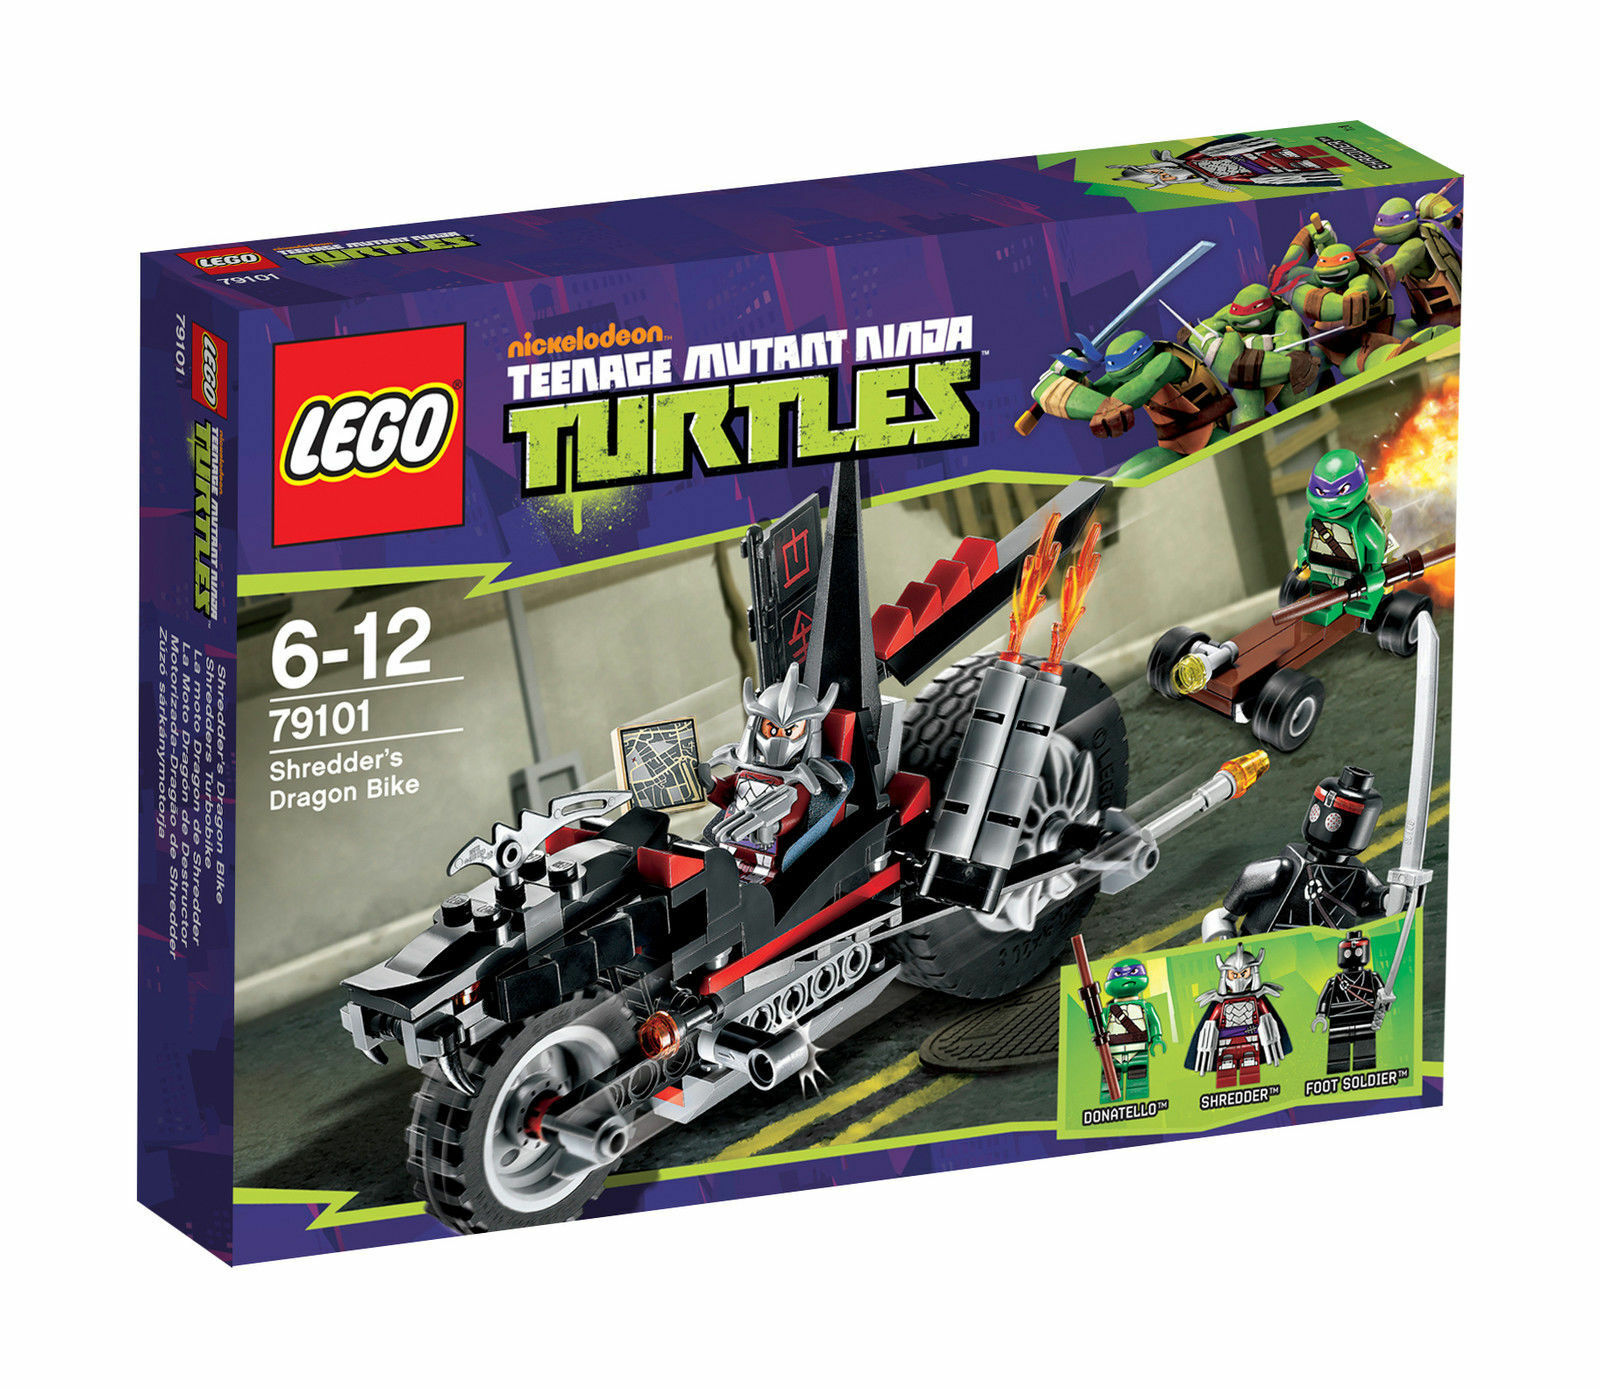 NEUOVPLEGO 79101 Shrotders Dragon Turbo Bike Teenage Mutant Ninja Turtles